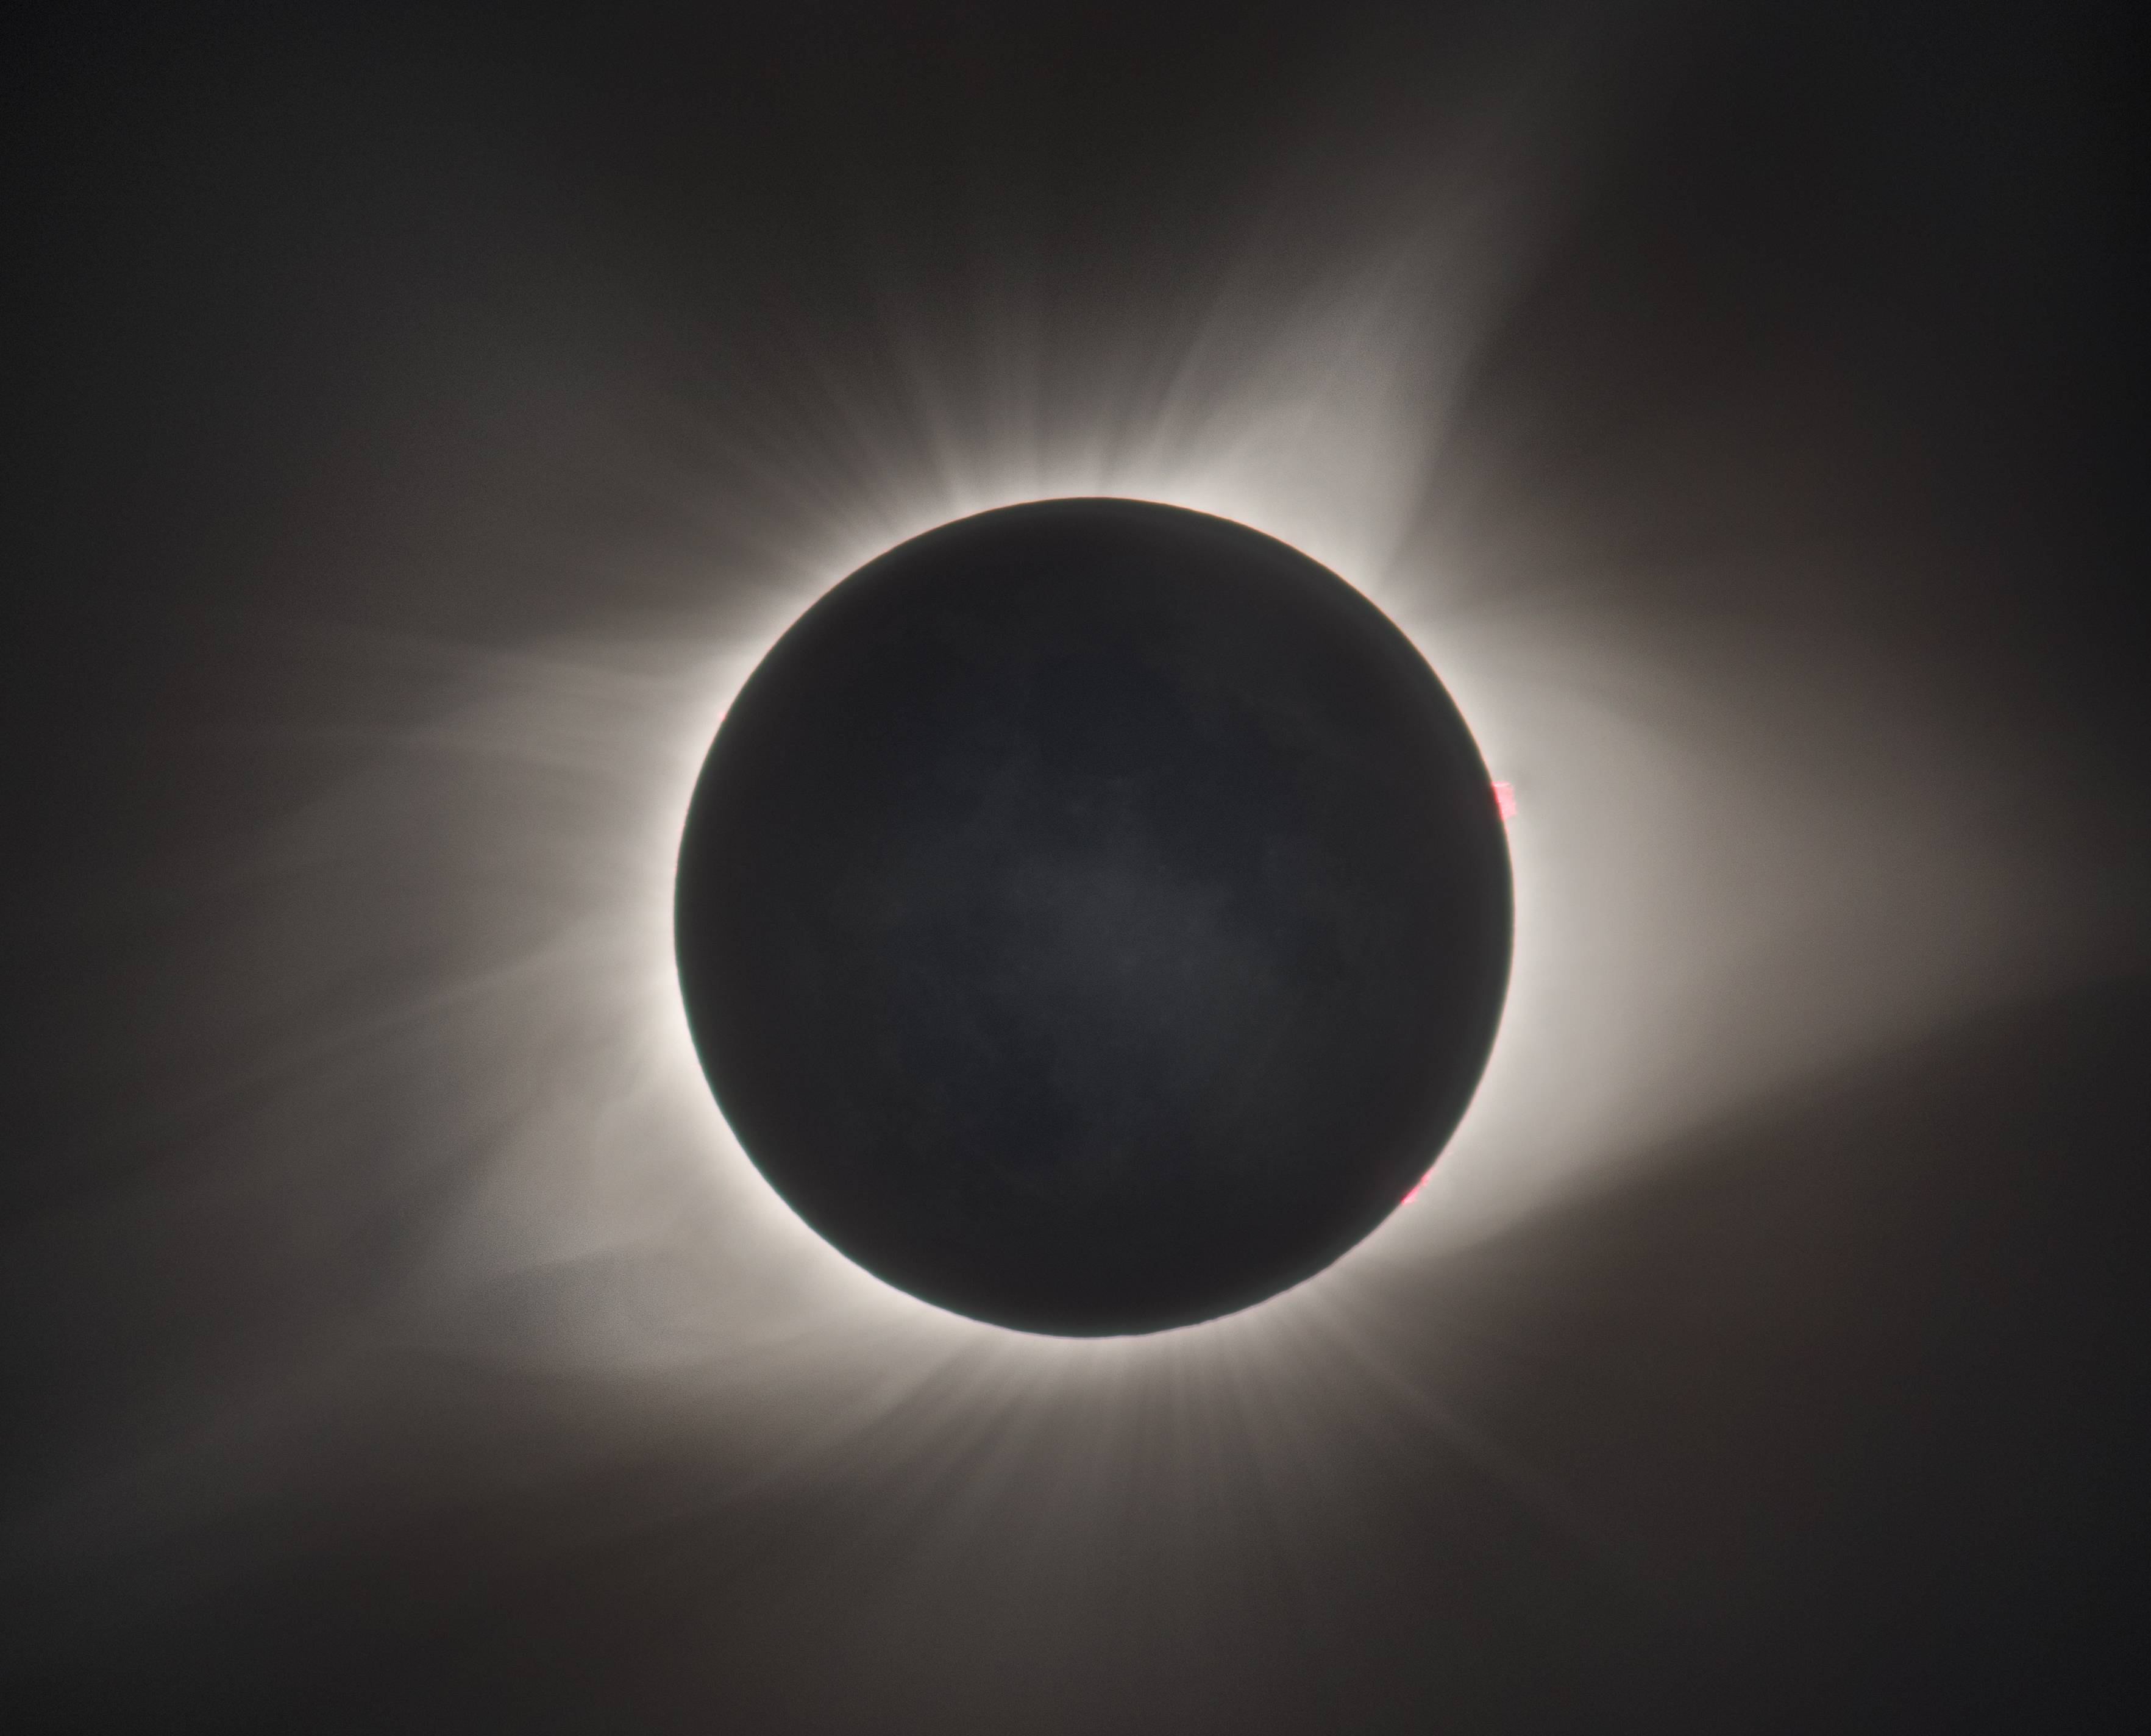 Solar Eclipse seen in St Louis MO Aug 21, 2017